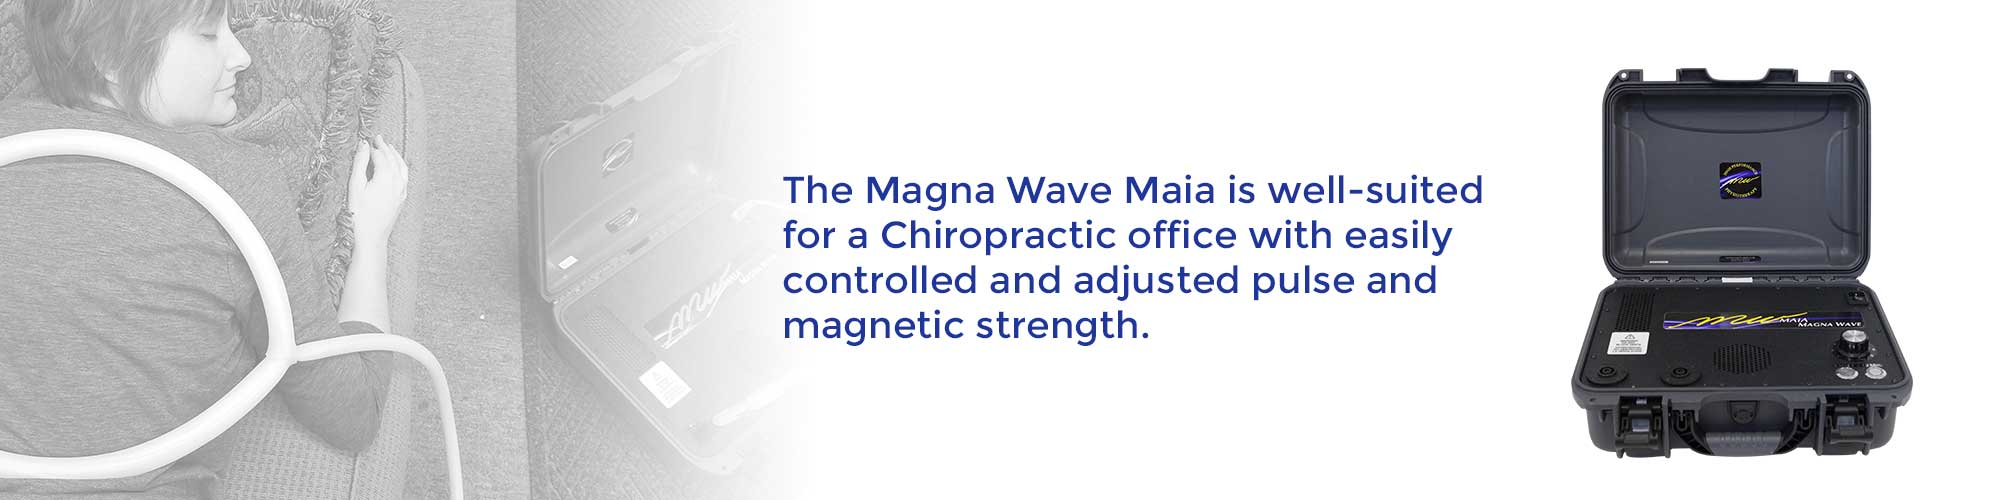 The Magna Wave Maia is well-suited for a Chiropractic office with easily controlled and adjusted pulse and magnetic strength.